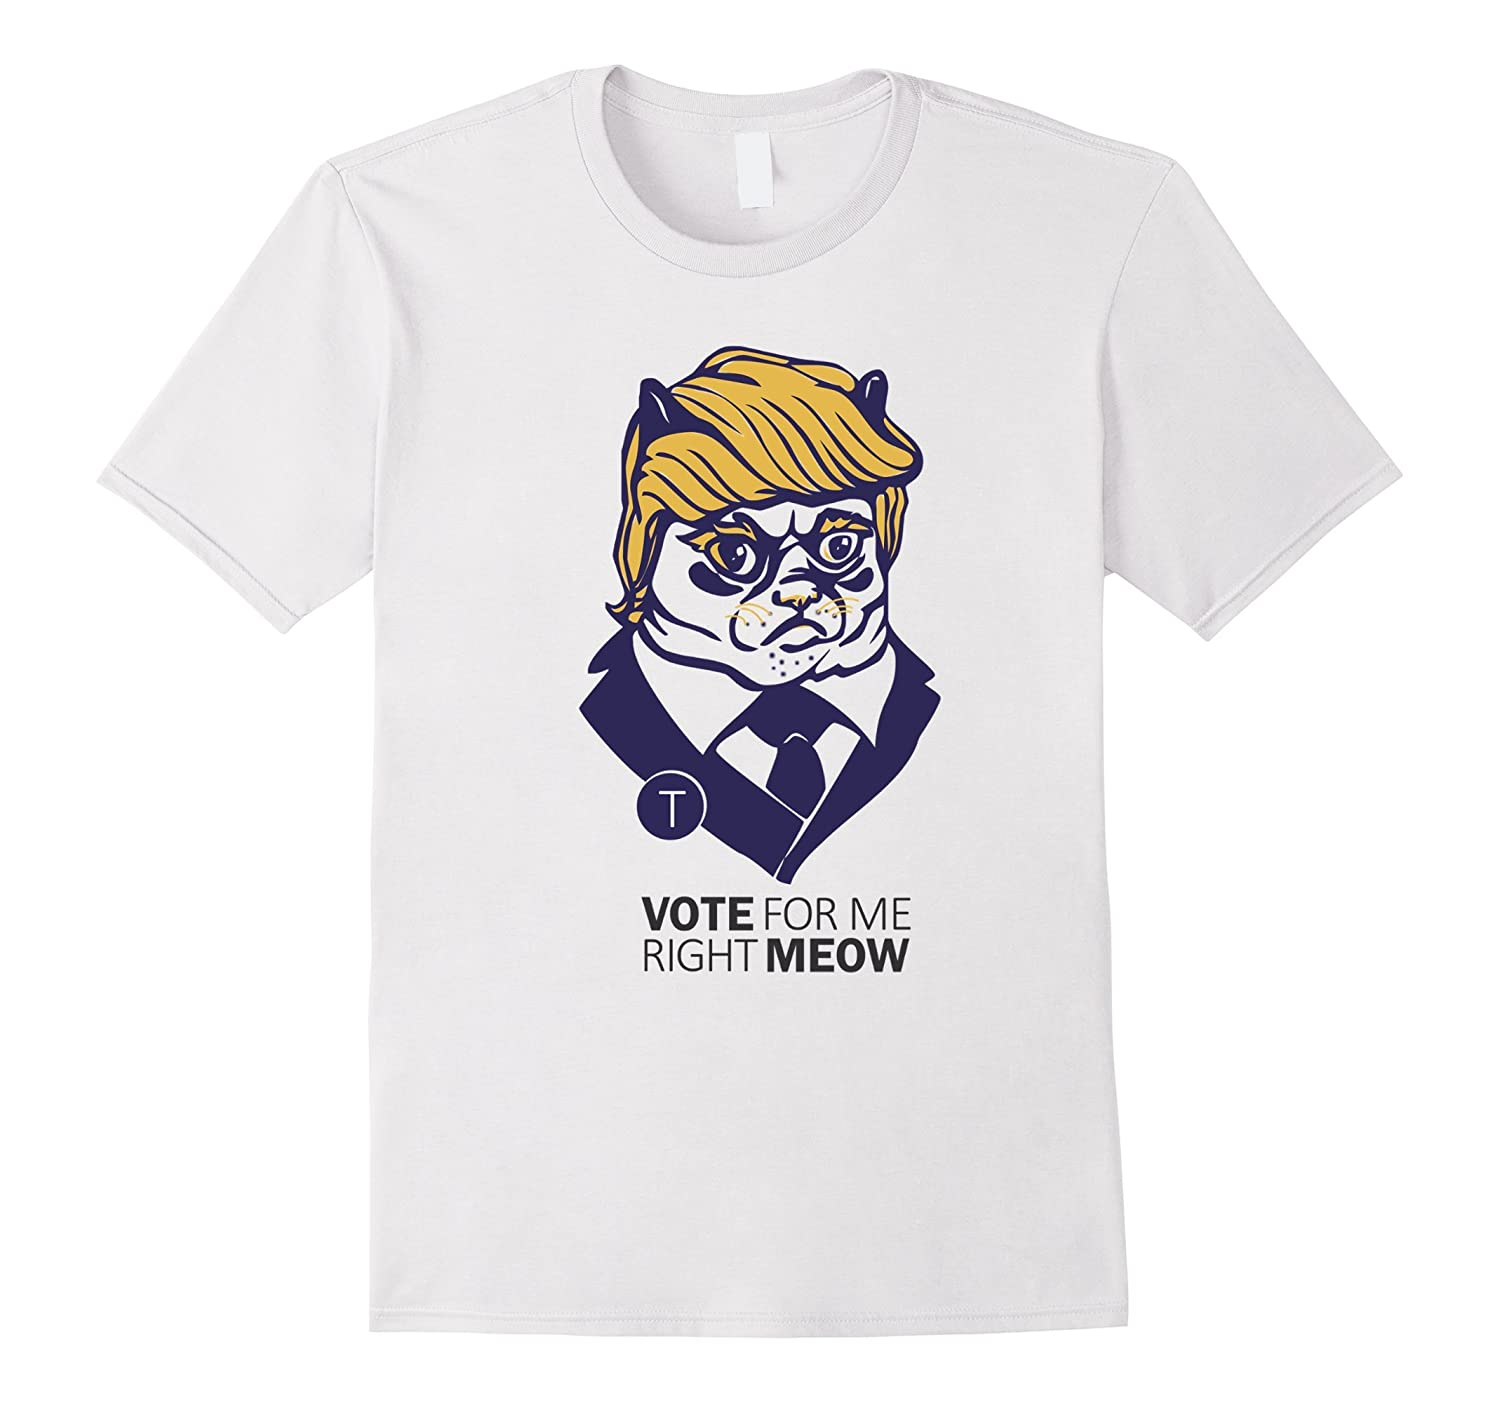 224edec58 Donald Trump Vote For Me Right Meow Funny Republican Shirt-RT ...